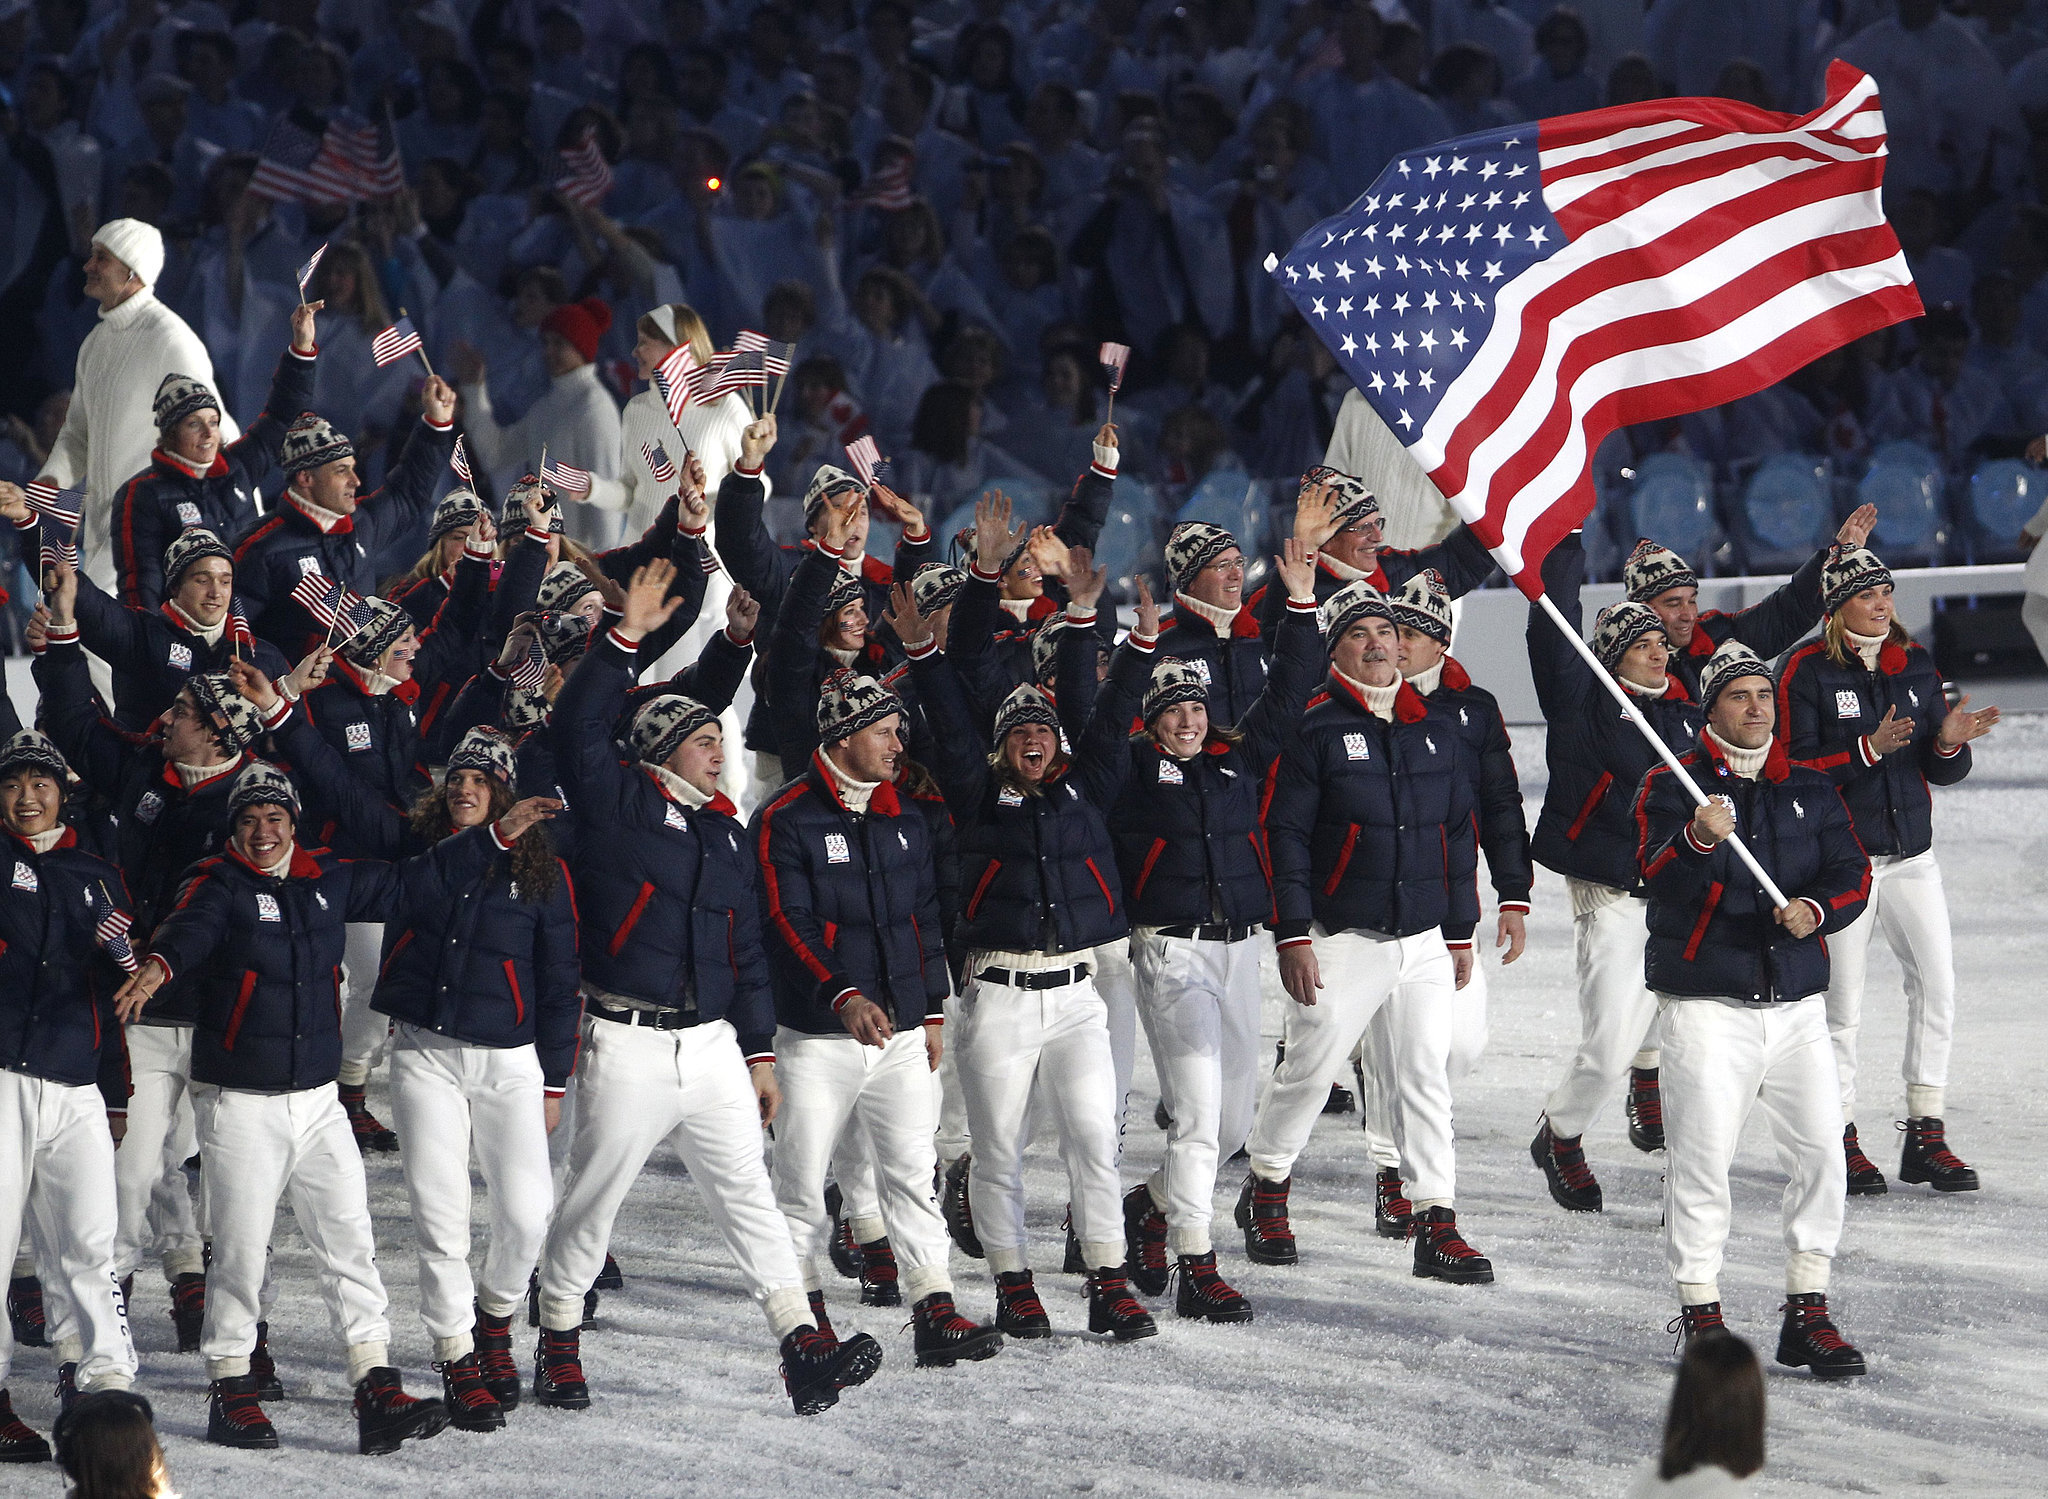 Team USA at the 2010 Winter Olympics